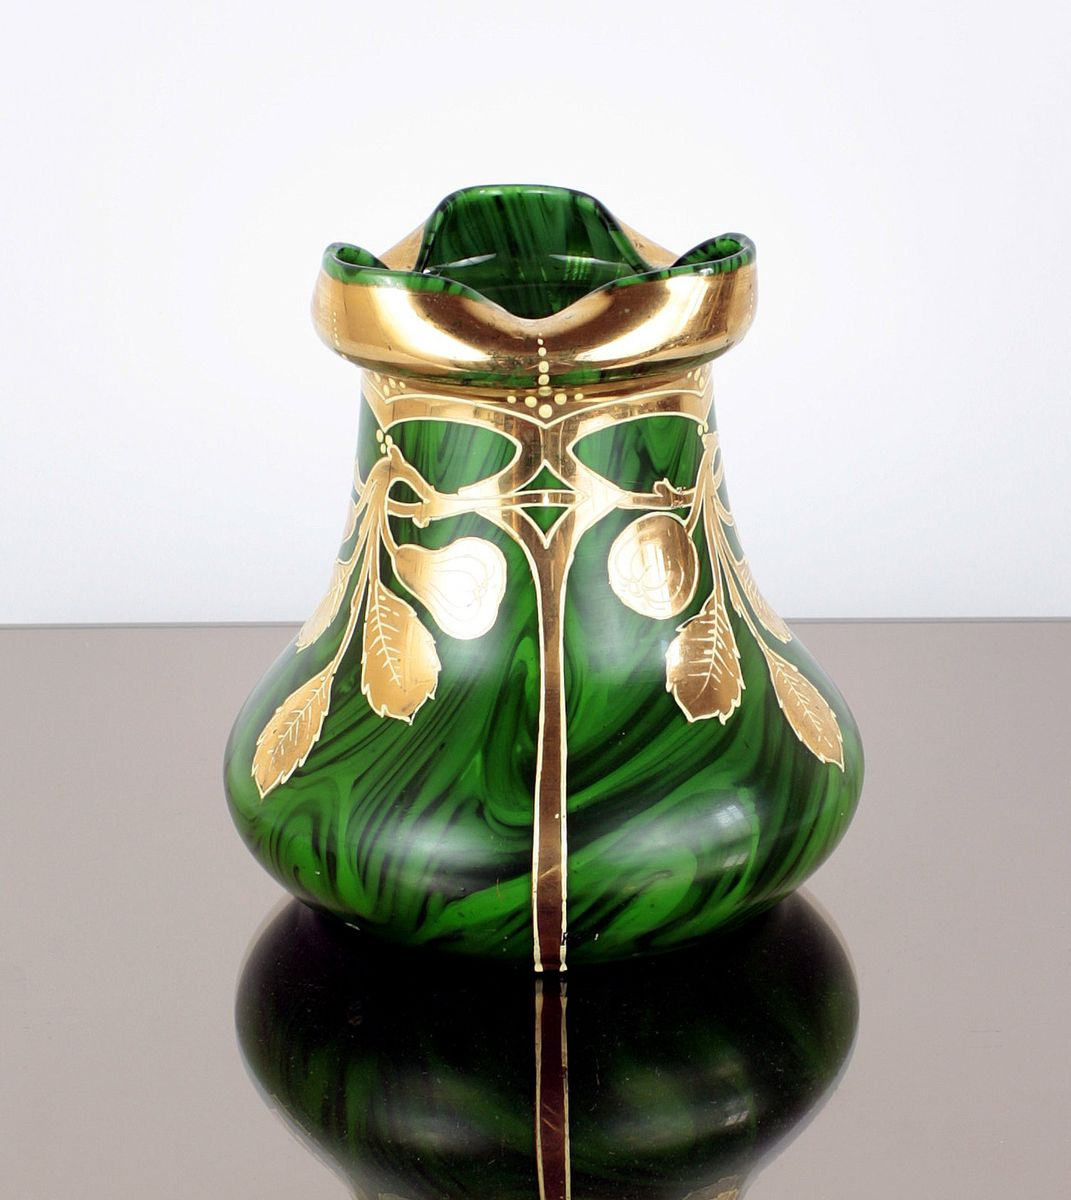 Art nouveau glass vase with gilding from harrach 1900s for sale art nouveau glass vase with gilding from harrach 1900s 3 97100 price per piece reviewsmspy